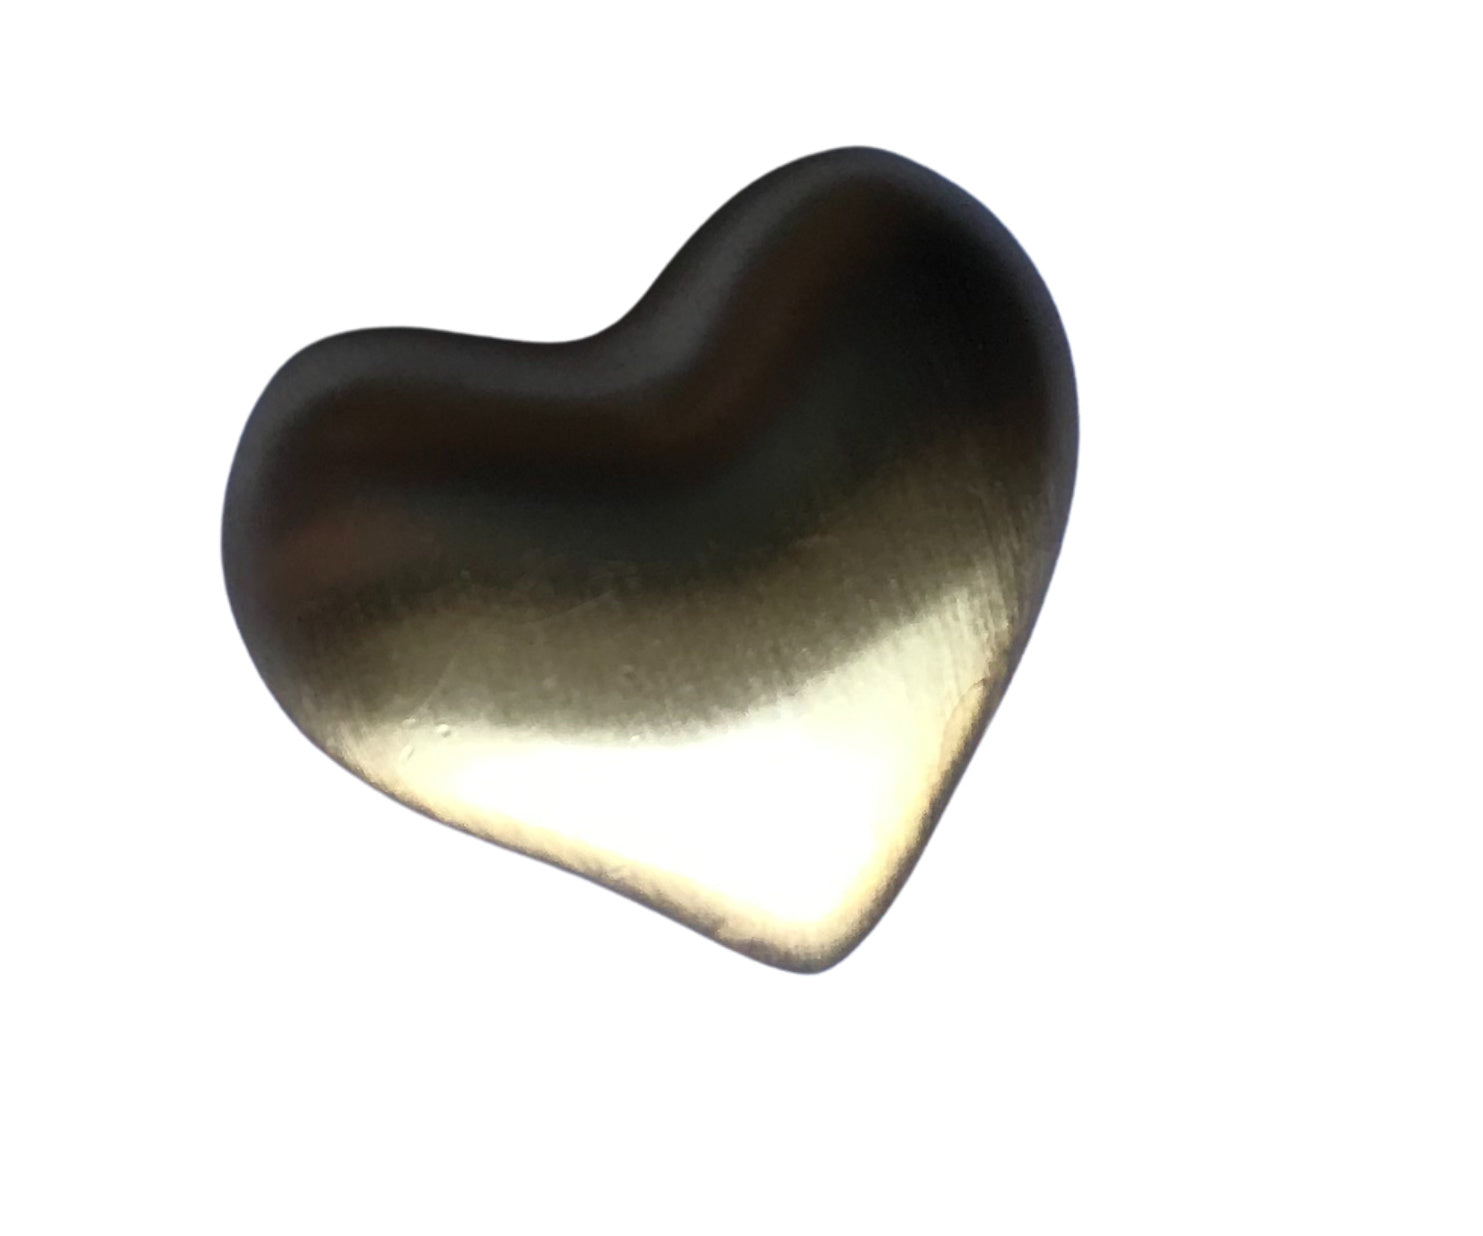 Brushed Gold Tone Metal Puffy Heart Brooch circa 1980s